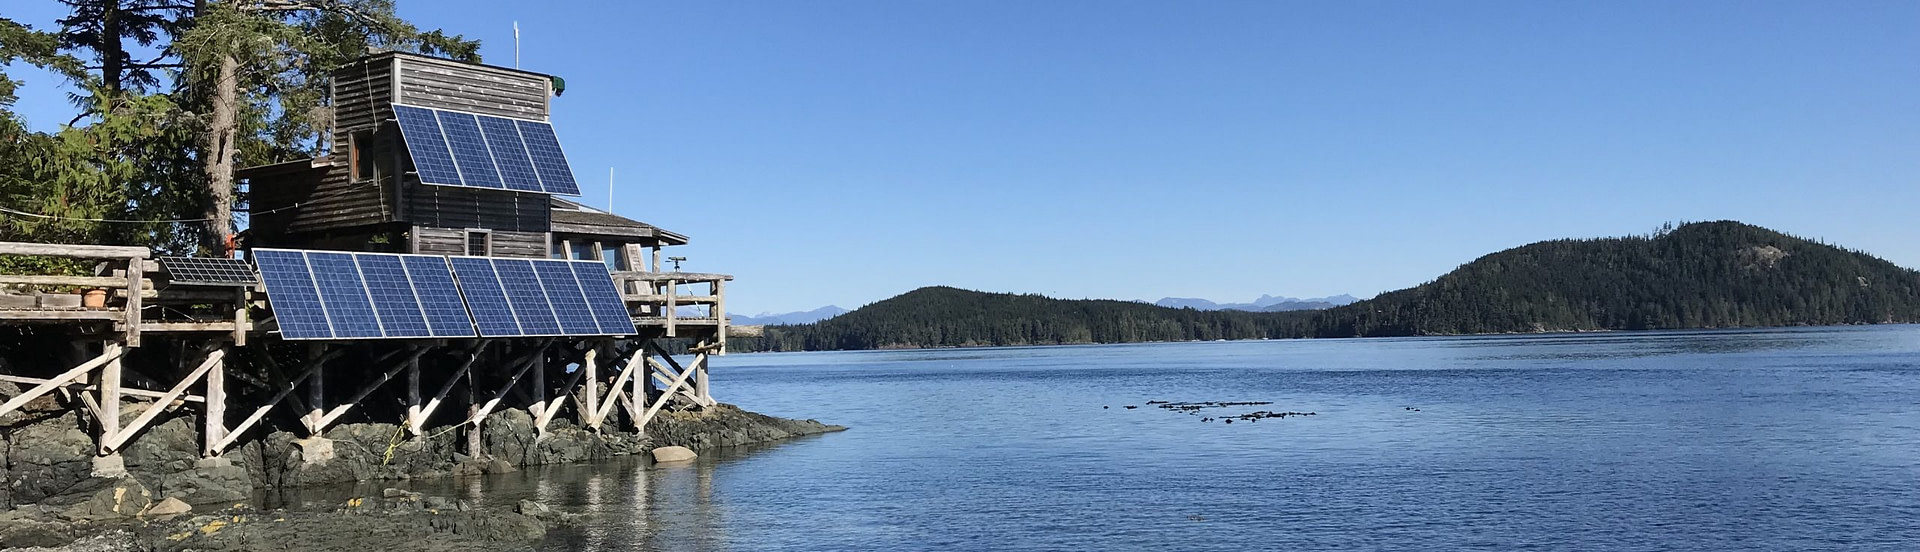 XRain Self Wiping Camera Enclosure System Installed At Orcalab On Hanson Island Orcalab Overlooking Resident Orcas In British Columbia Canada